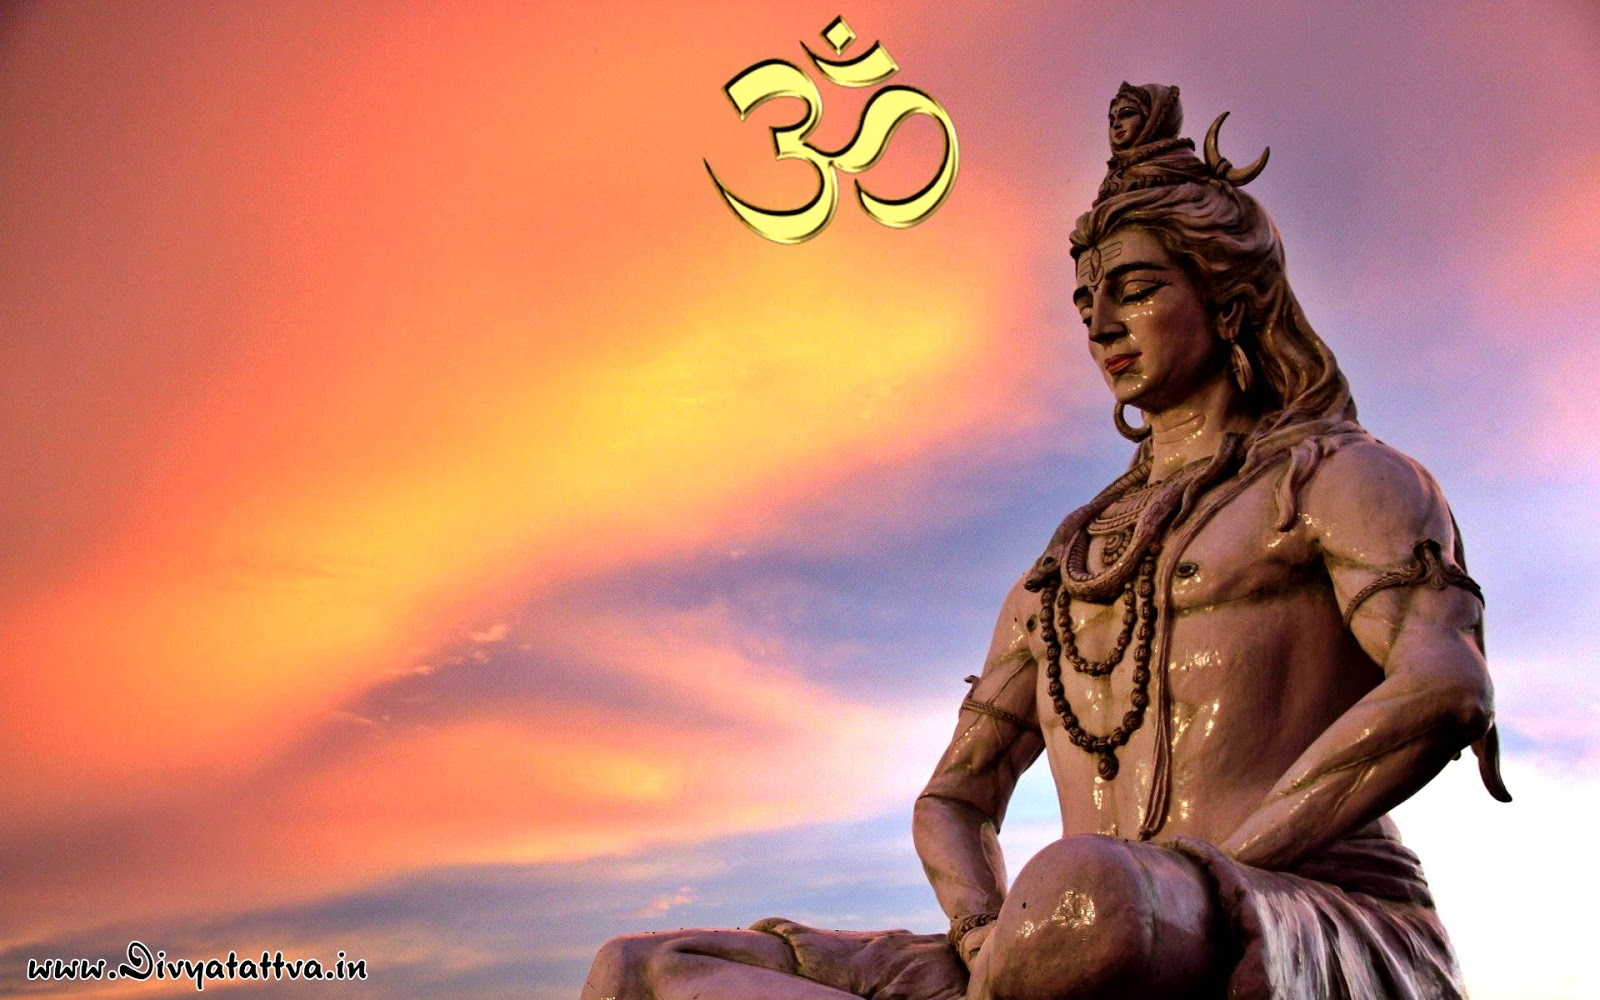 Divyatattva Astrology Free Horoscopes Psychic Tarot Yoga Tantra     Free Divyatattva in Lord Shiva Free HD Wallpaper Downloads  Lord Shiva HD  Desktop Wallpaper